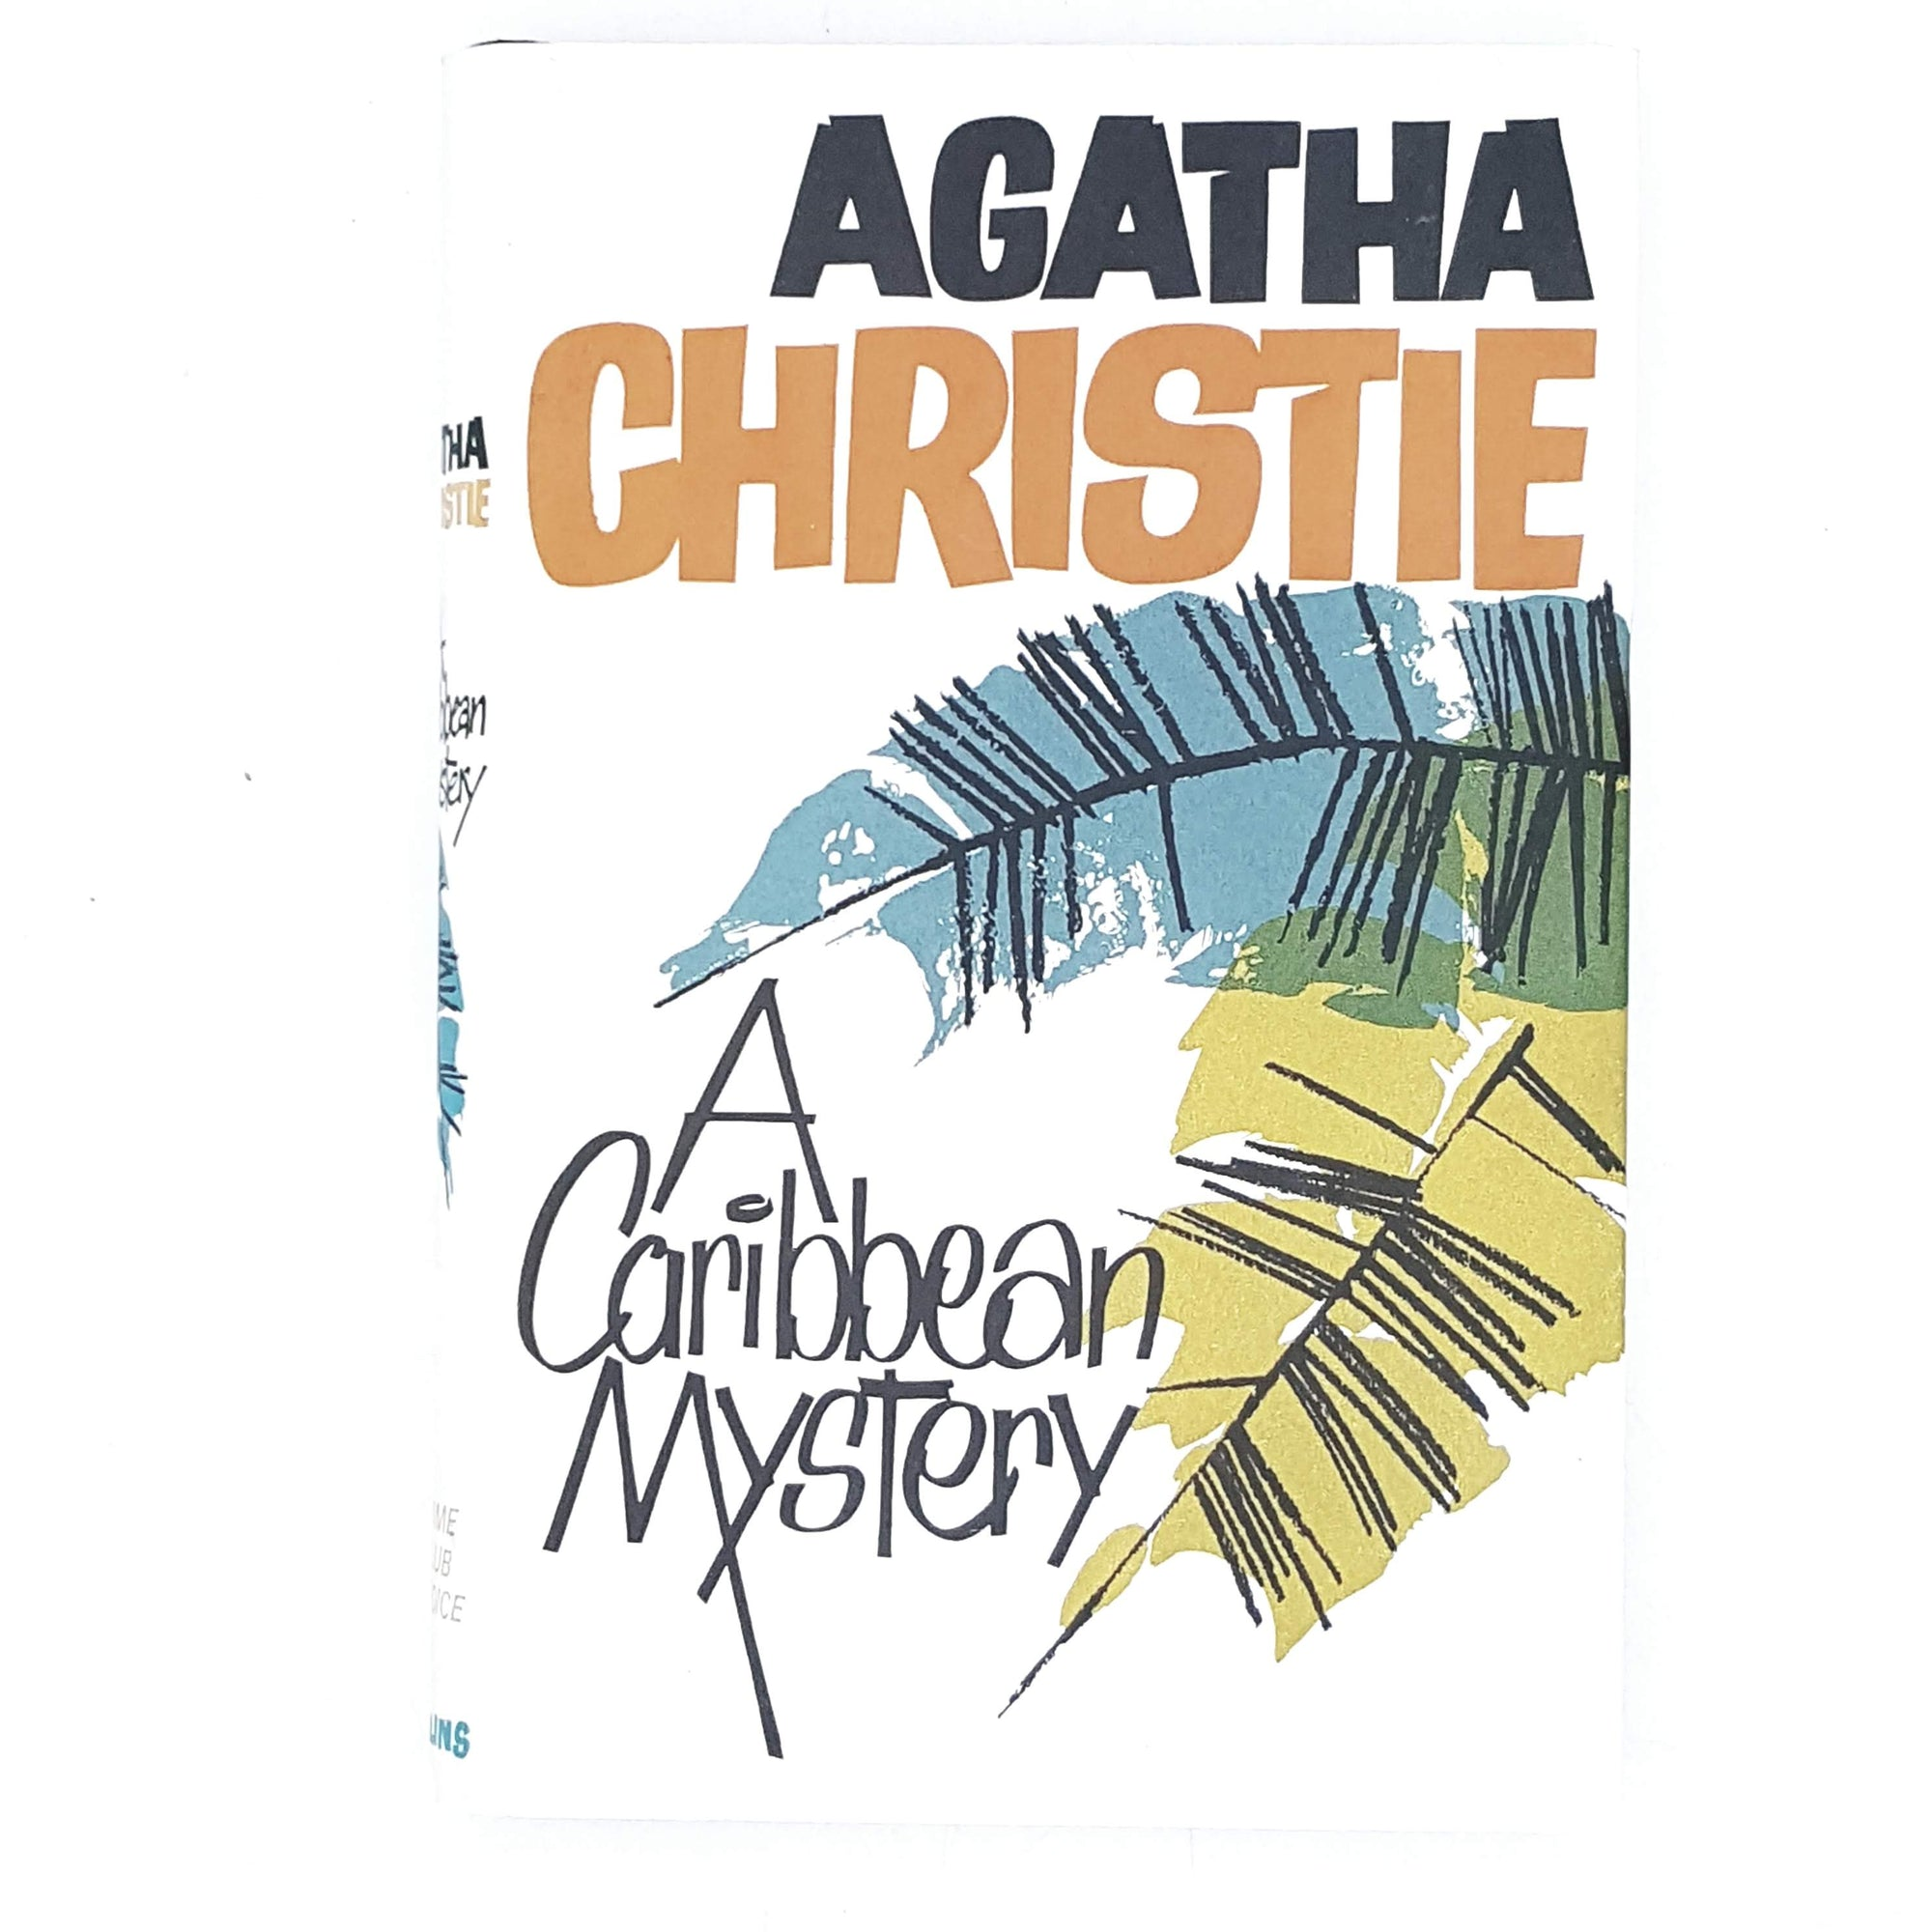 white-caribbean-agatha-christie-crime-vintage-book-country-house-library